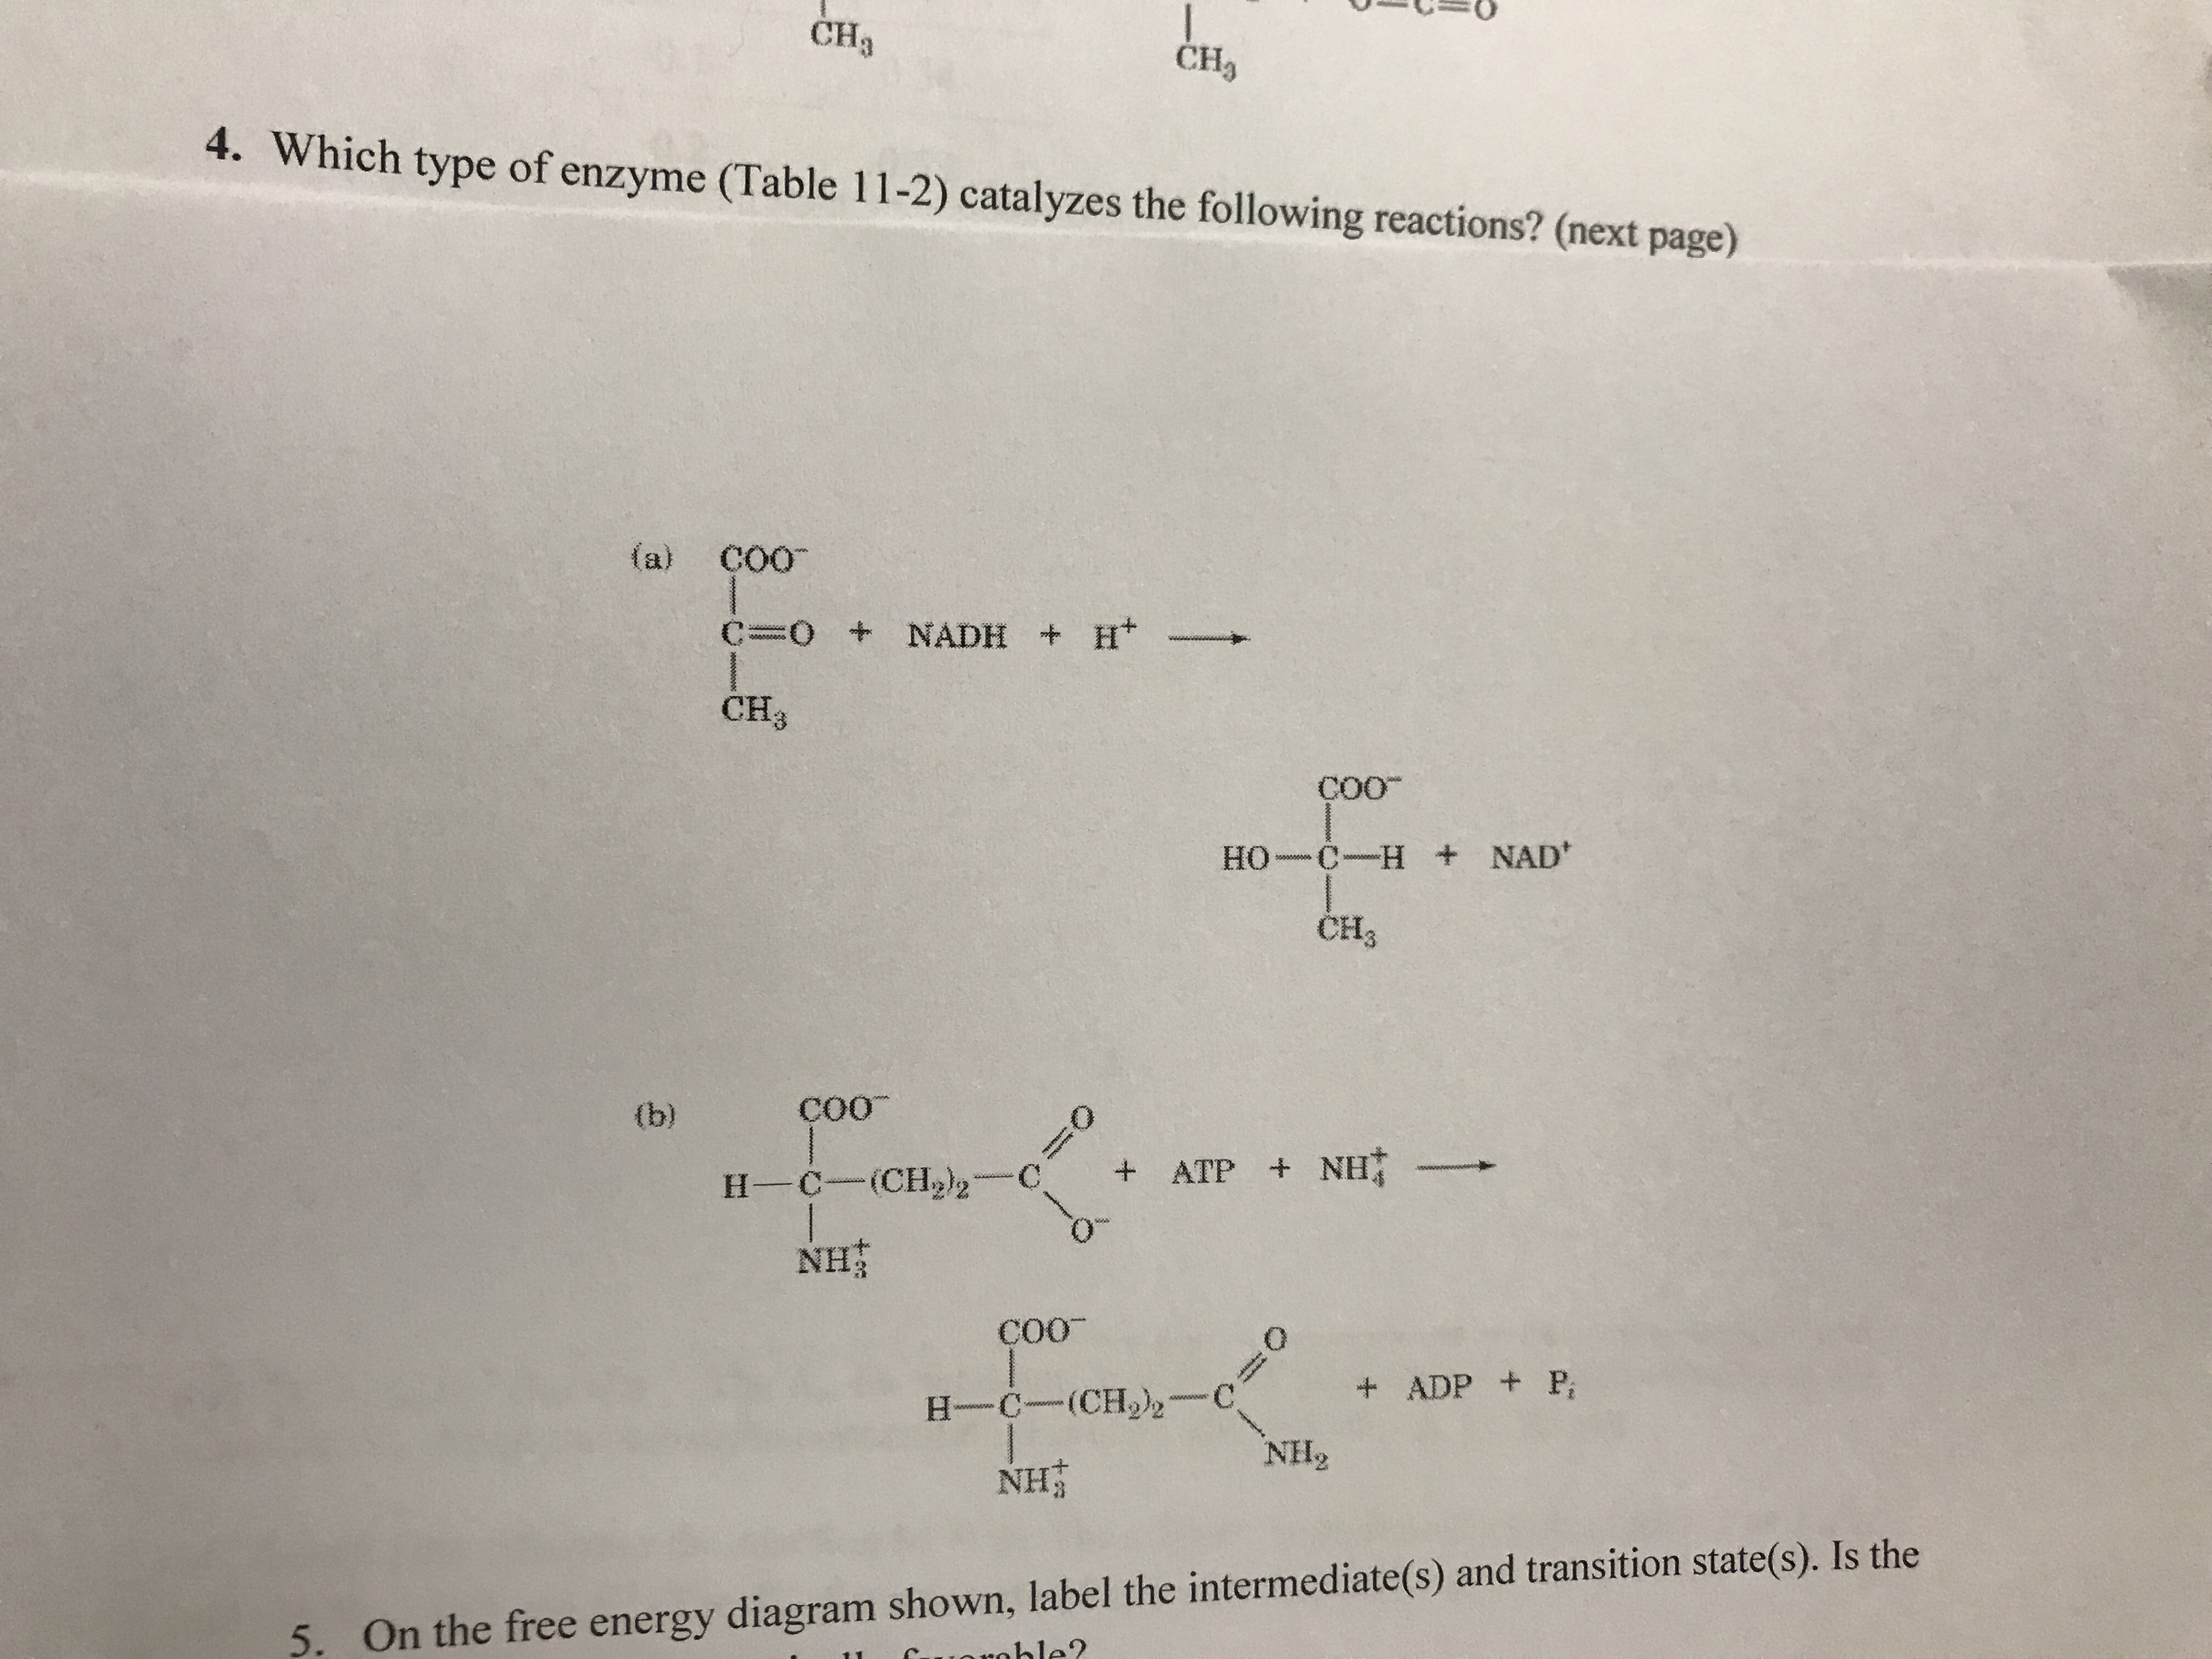 CHa CH 4. Which type of enzyme (Table 11-2) catalyzes the following reactions? (next page) (a) Co0 C=O + NADH + H+- CH3 Coo HH NAD CH3 coo ΝΗ Coo +ADP P NH2 NHİ 5. On the free energy diagram shown, label the intermediate(s) and transition state(s). Is the ble?